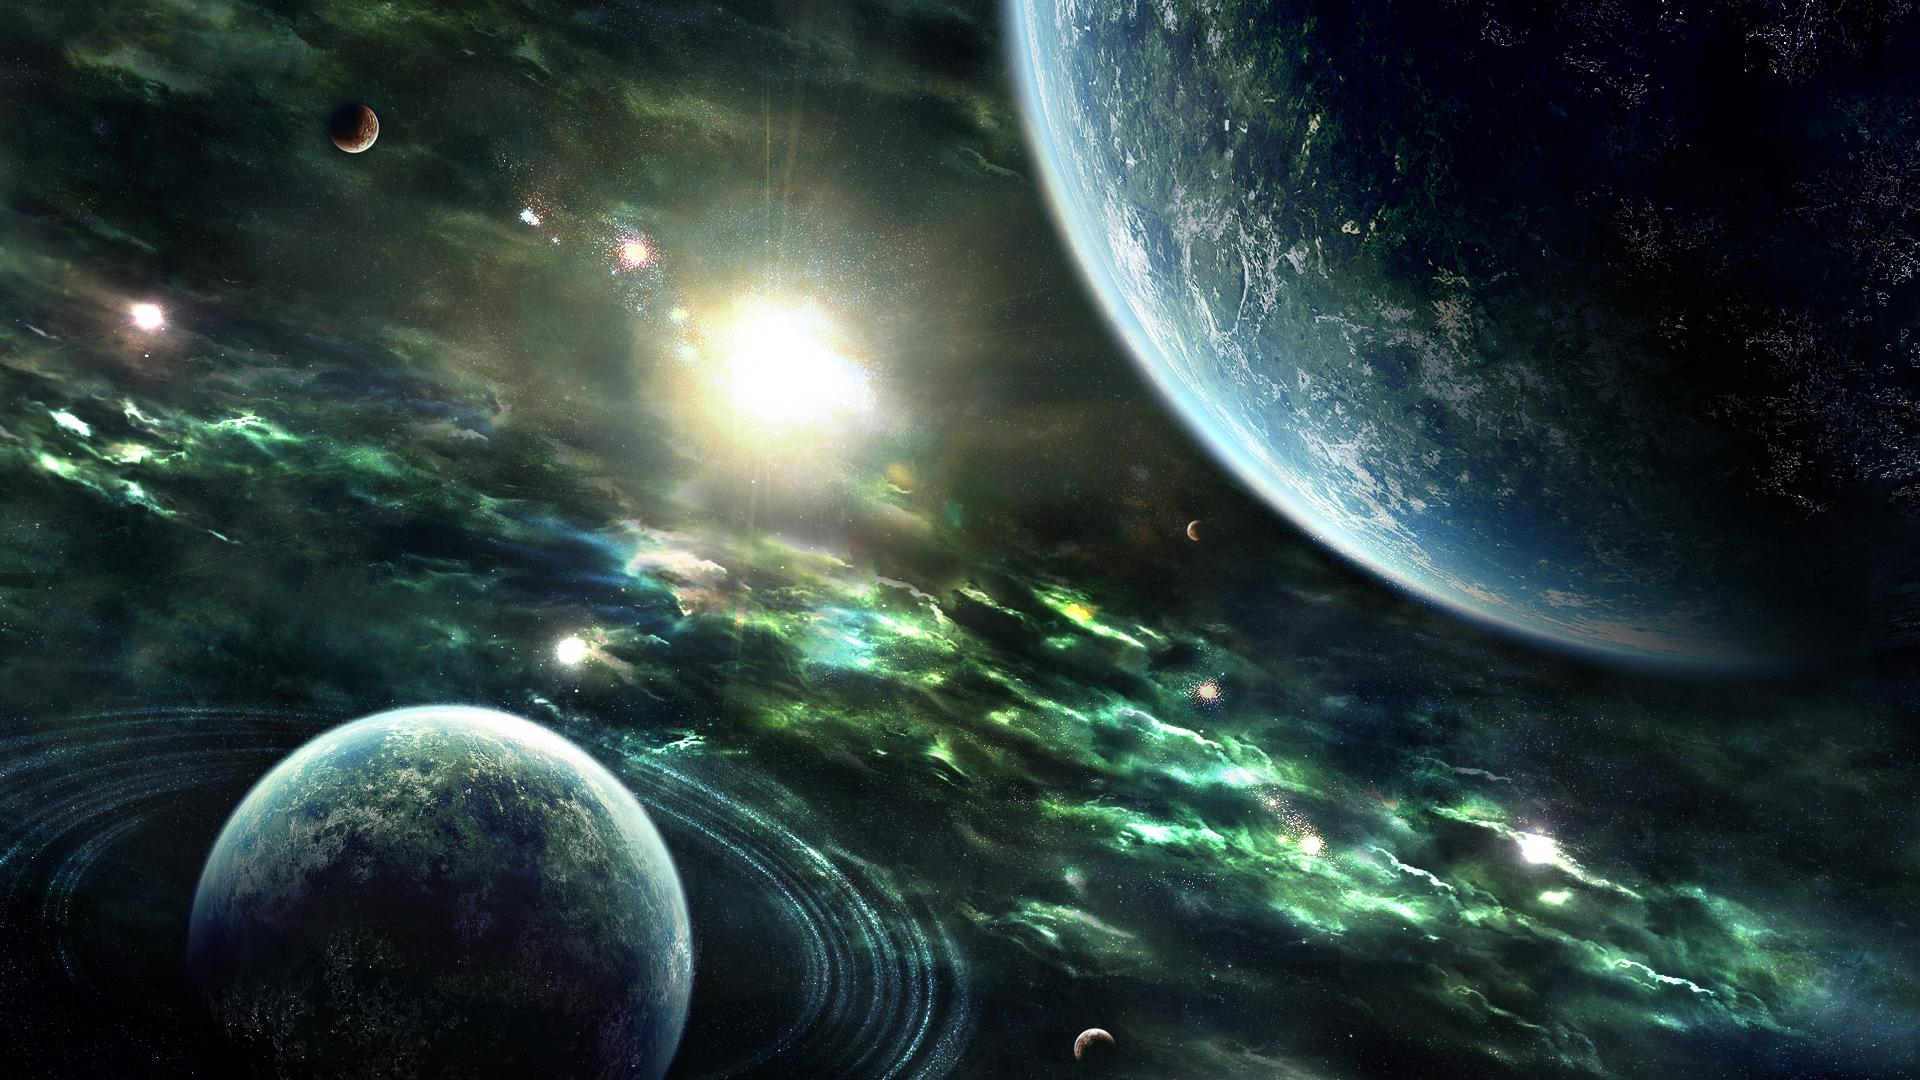 Space Wallpaper Widescreen 1920x1080